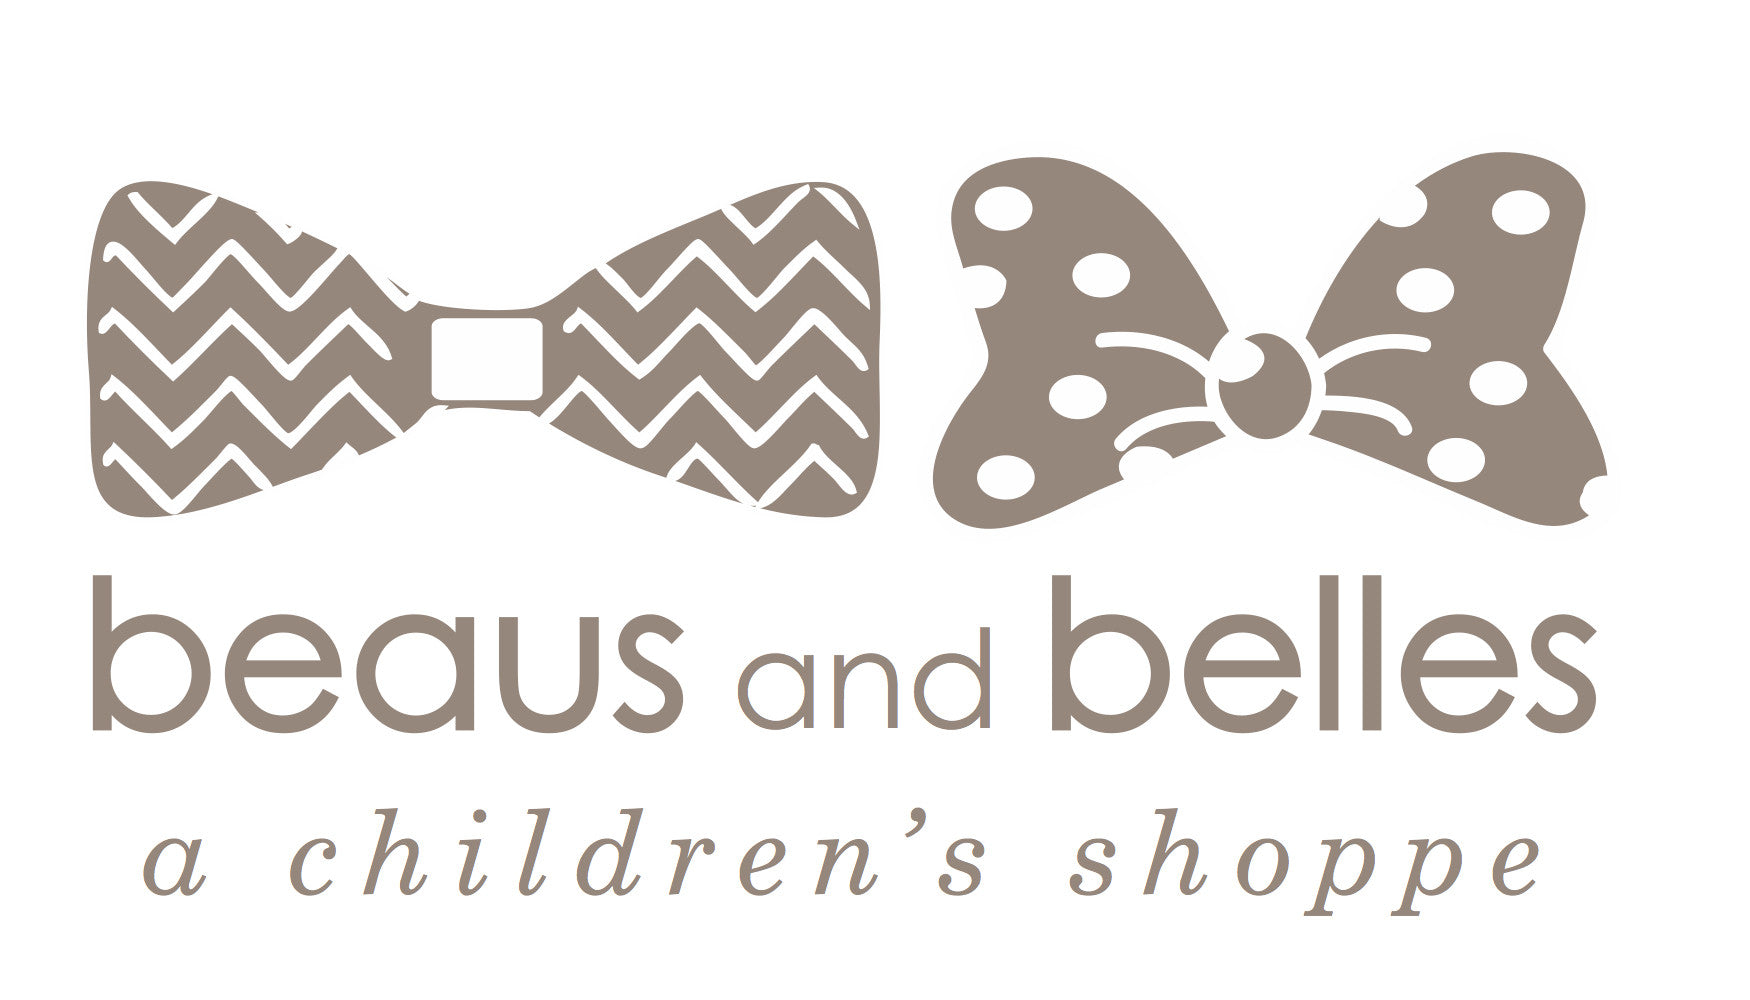 Beaus and Belles, A Children's Shoppe